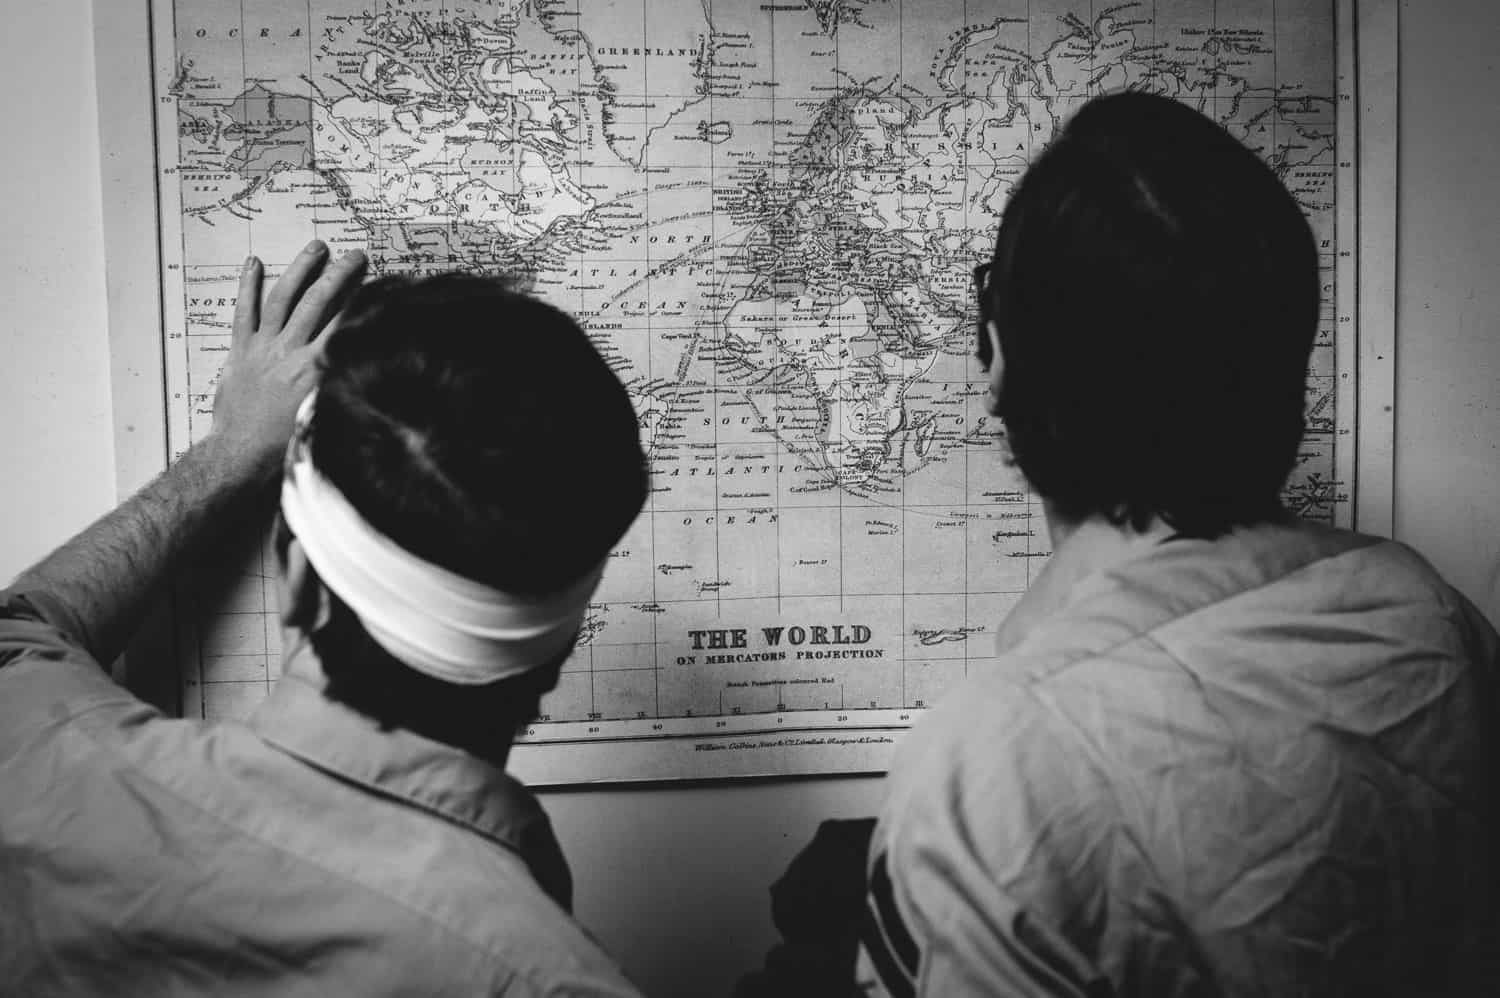 People looking at a map